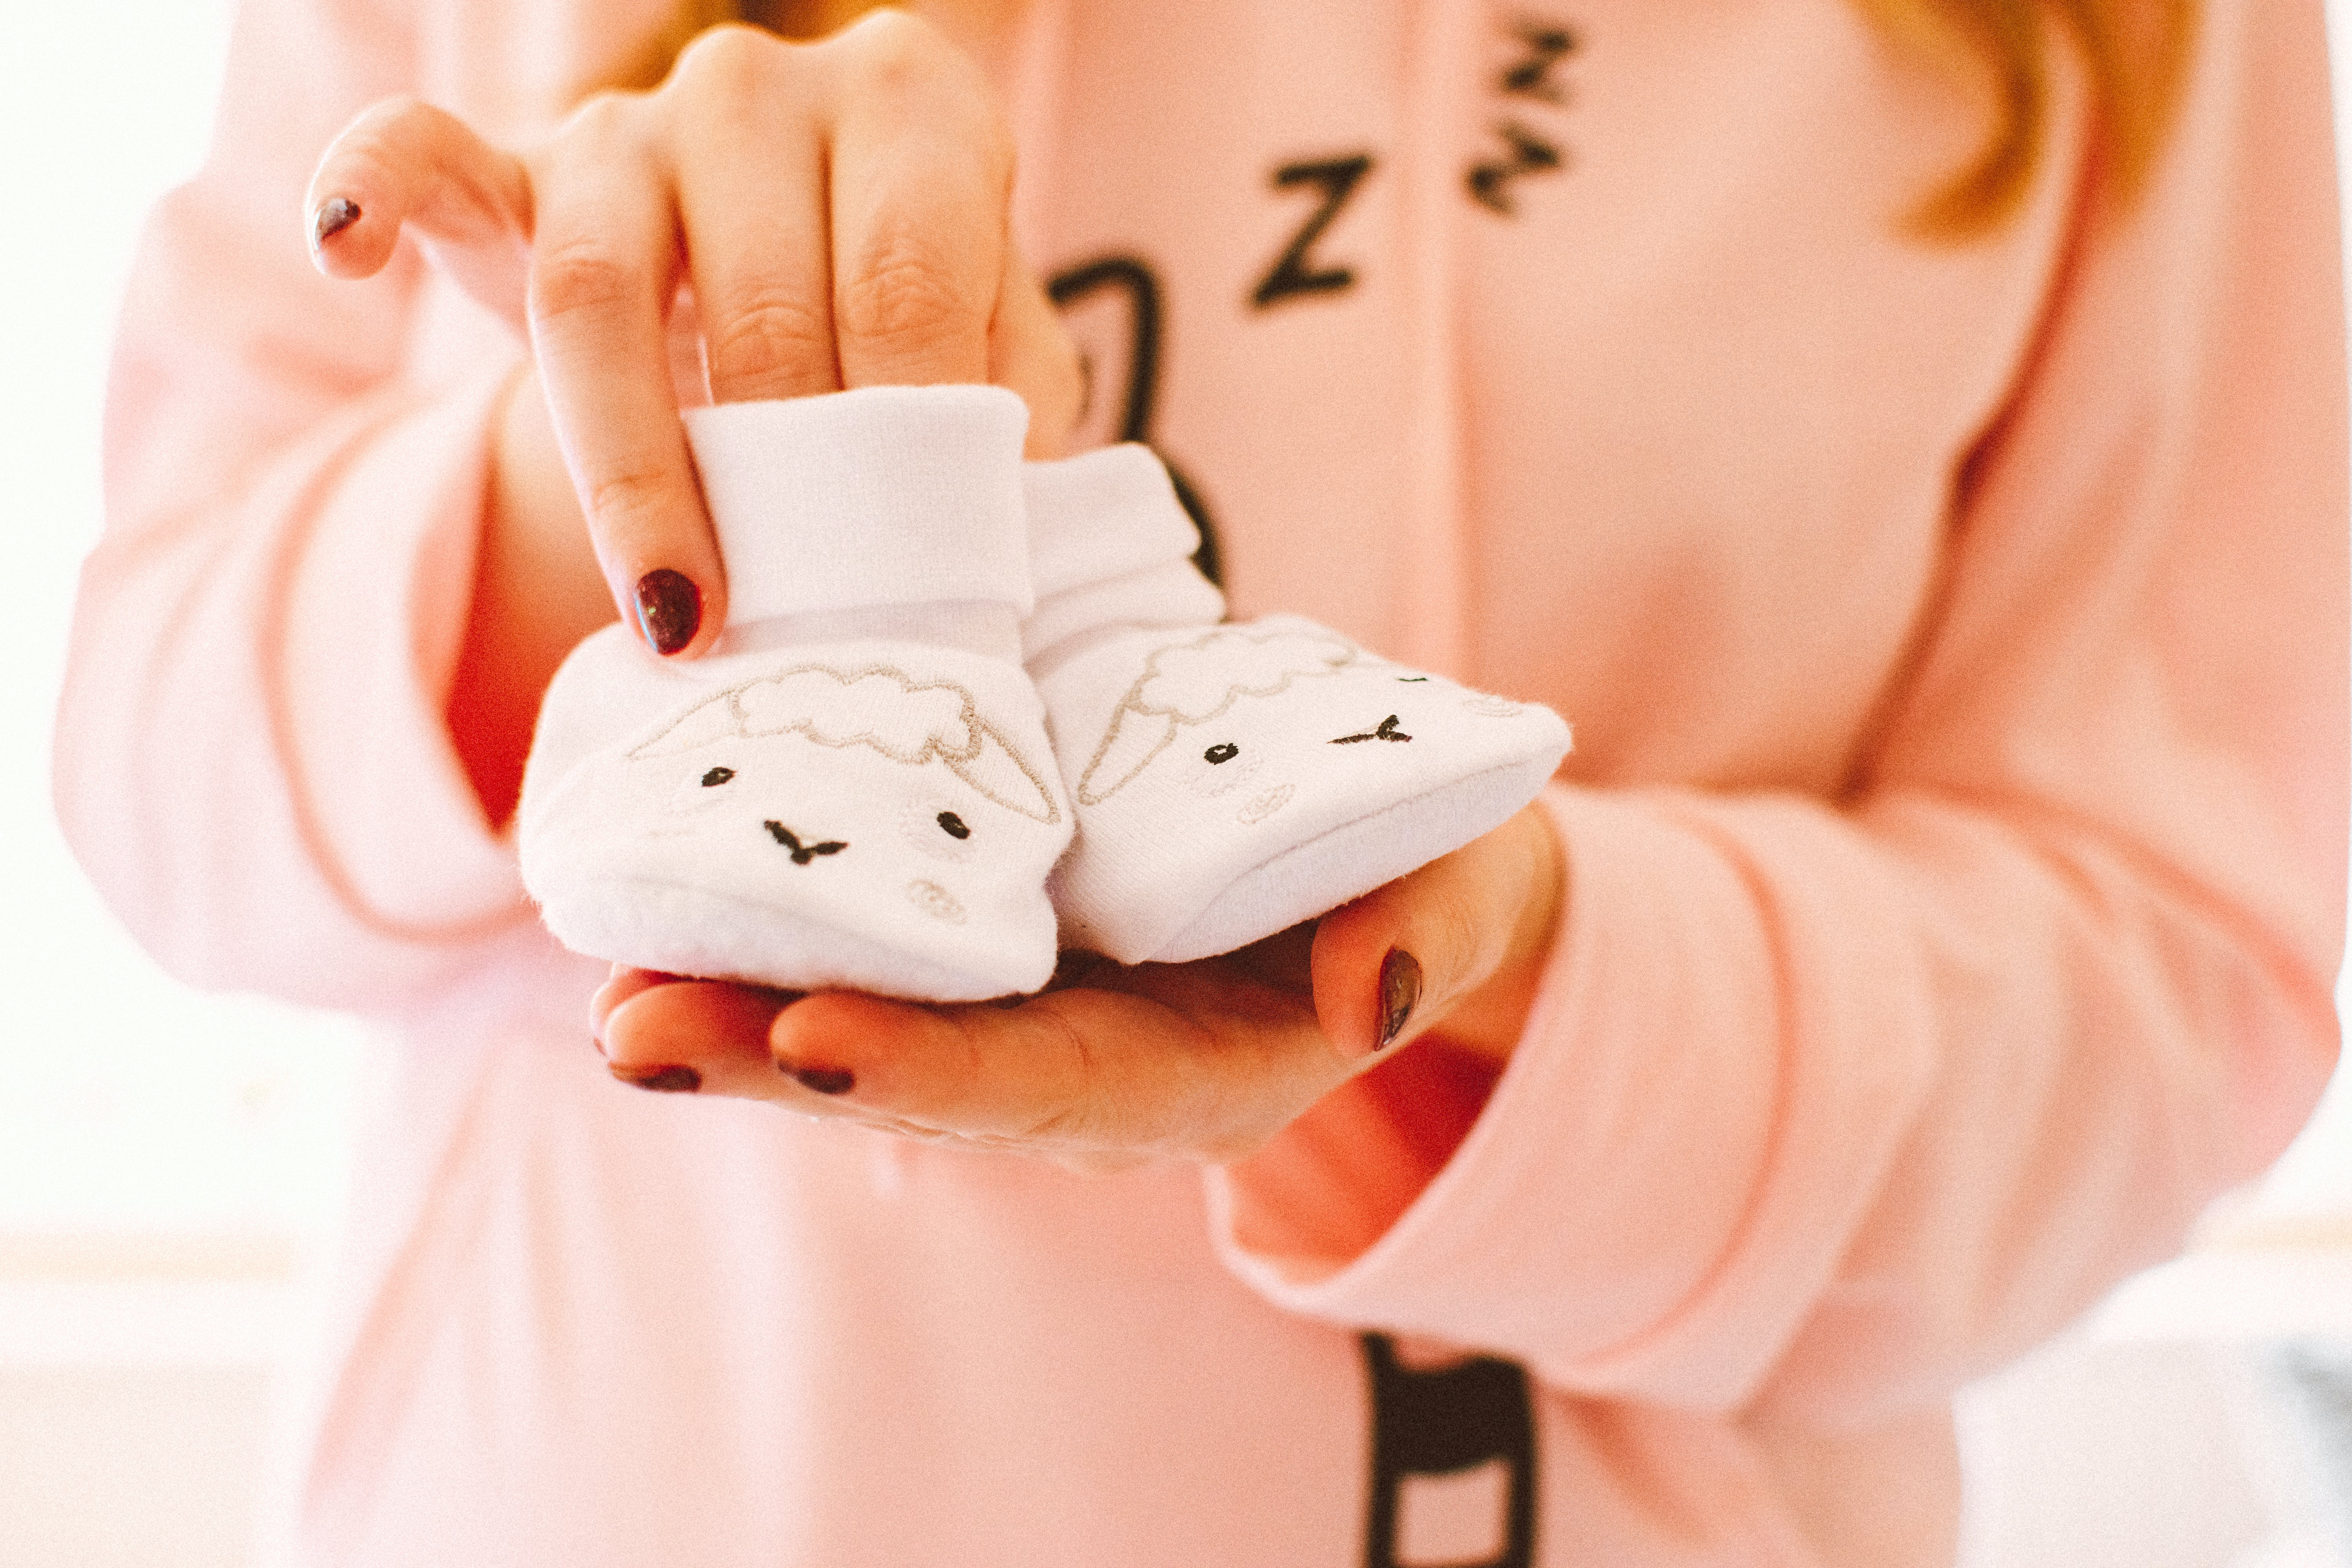 Woman Holding Baby's Pair of White Shoes